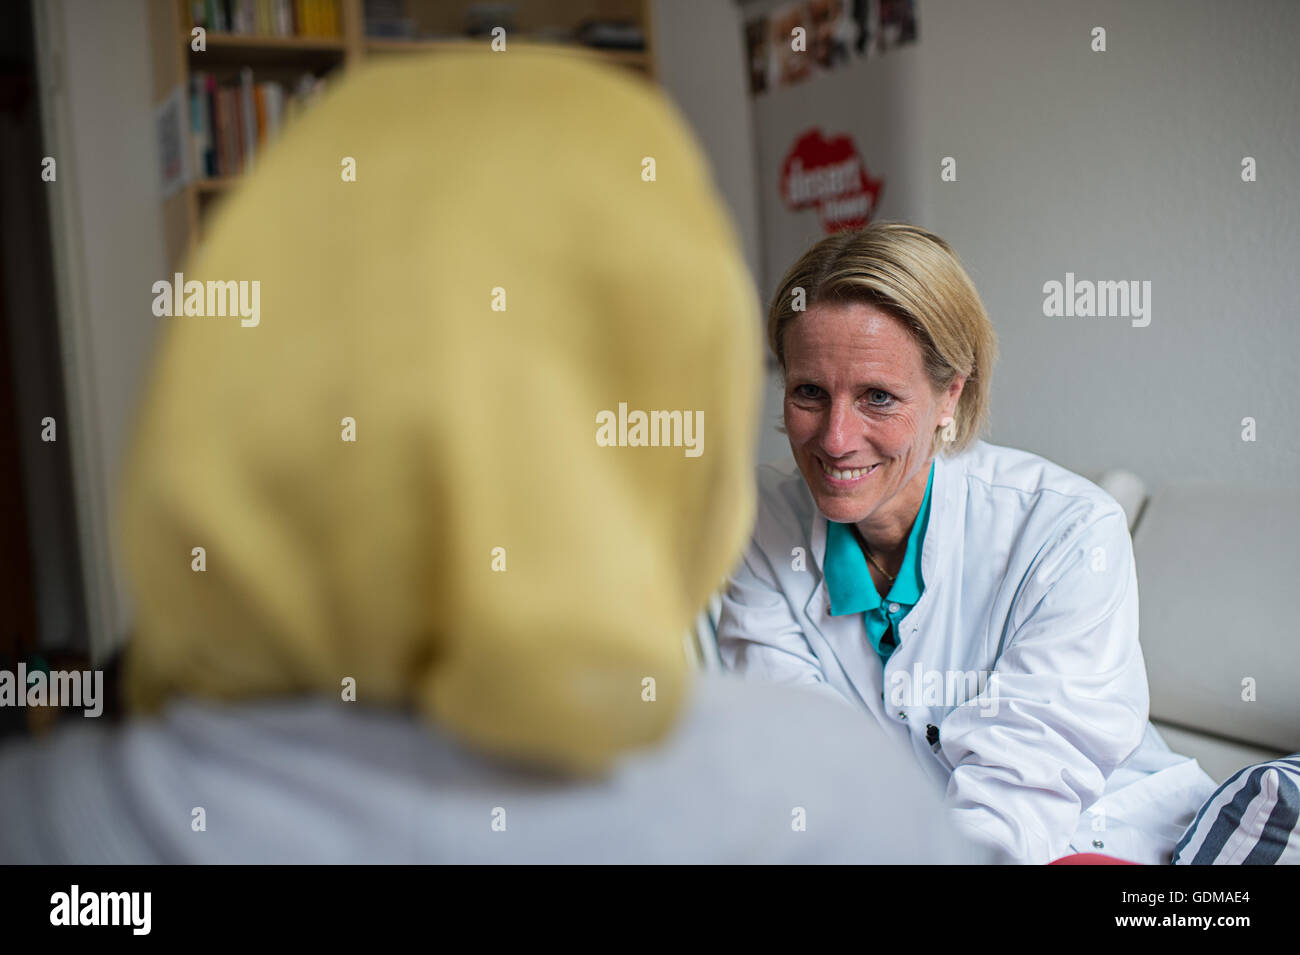 Berlin, Germany. 18th July, 2016. Senior physician Cornelia Strunz speaks with a patient in her office in the Waldfriede - Stock Image